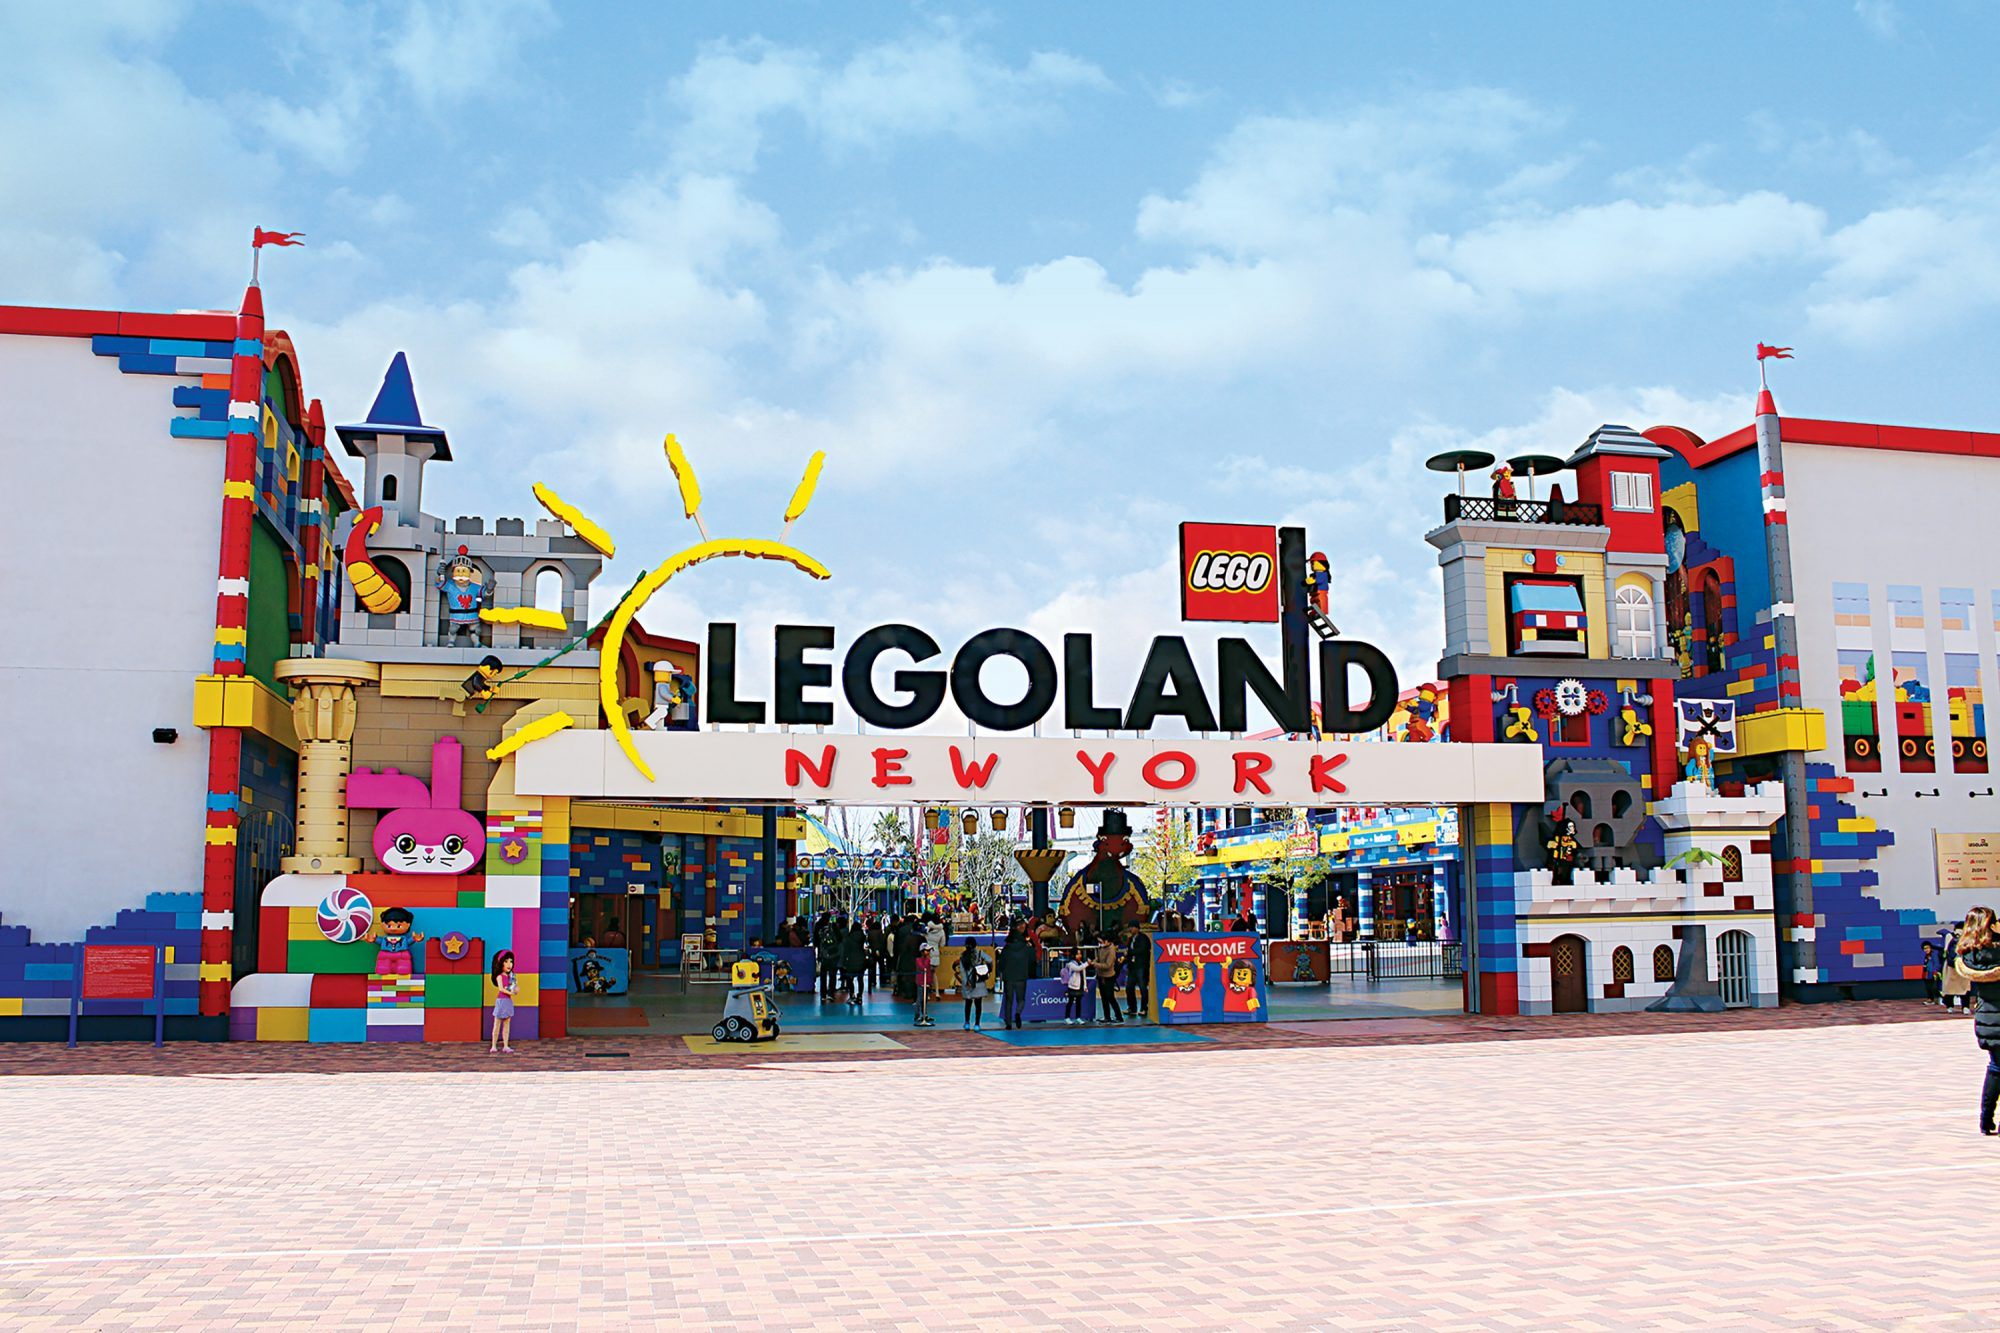 LEGOLAND New York Entrance Arch